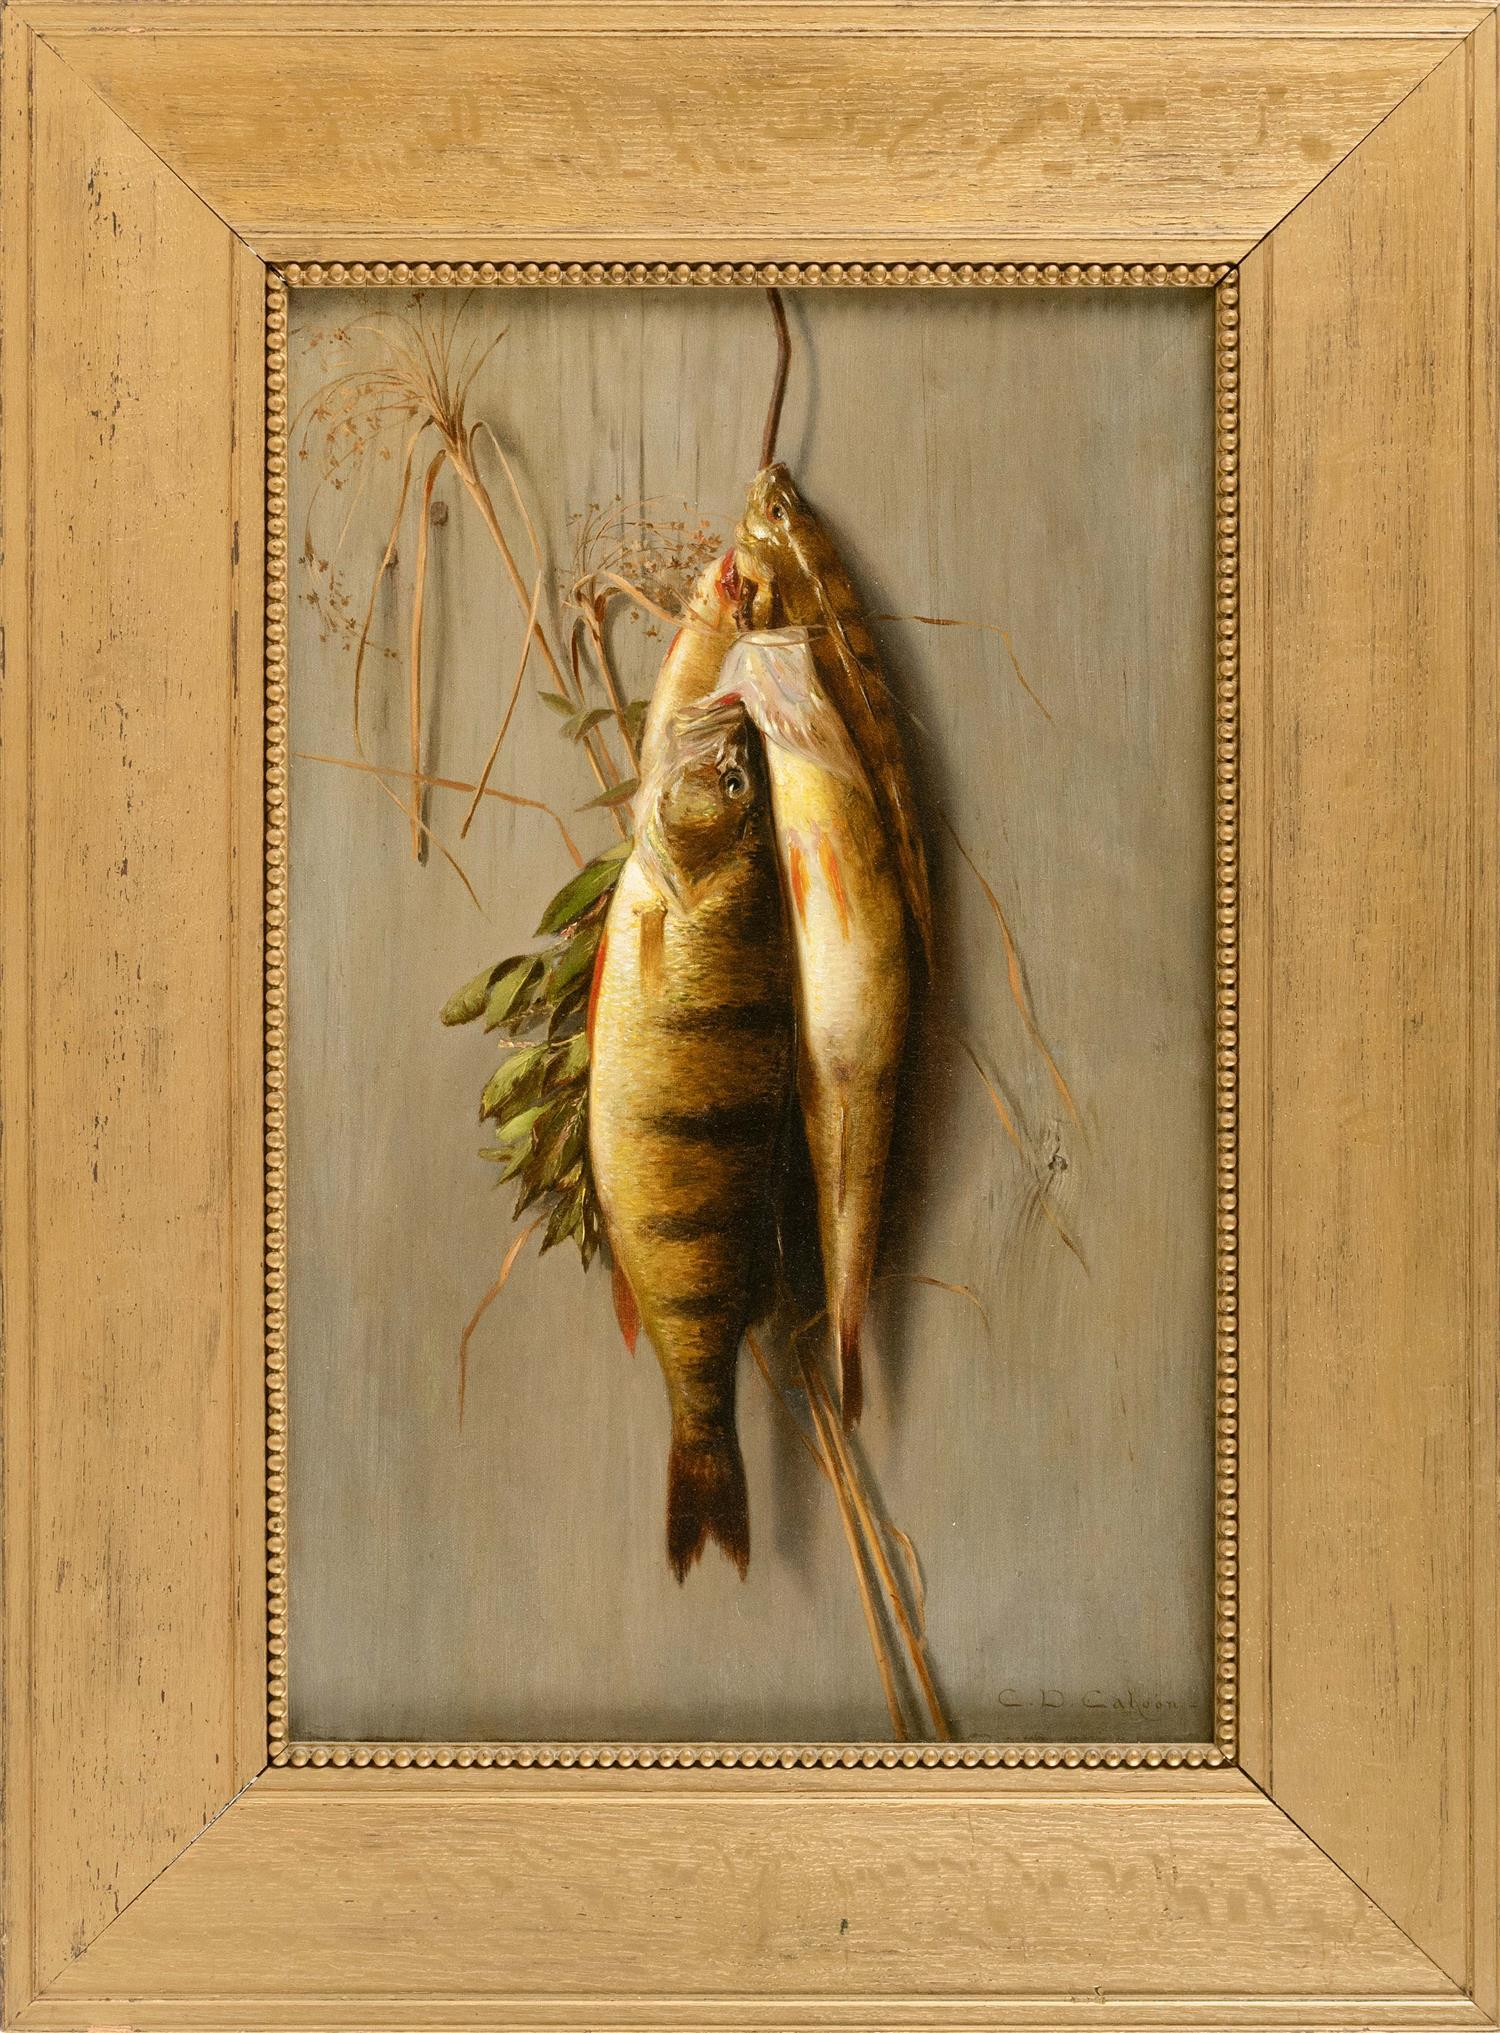 """CHARLES DREW CAHOON, Massachusetts, 1861-1951, Hanging yellow perch., Oil on canvas, 22"""" x 14"""". Framed 30.5"""" x 22""""."""